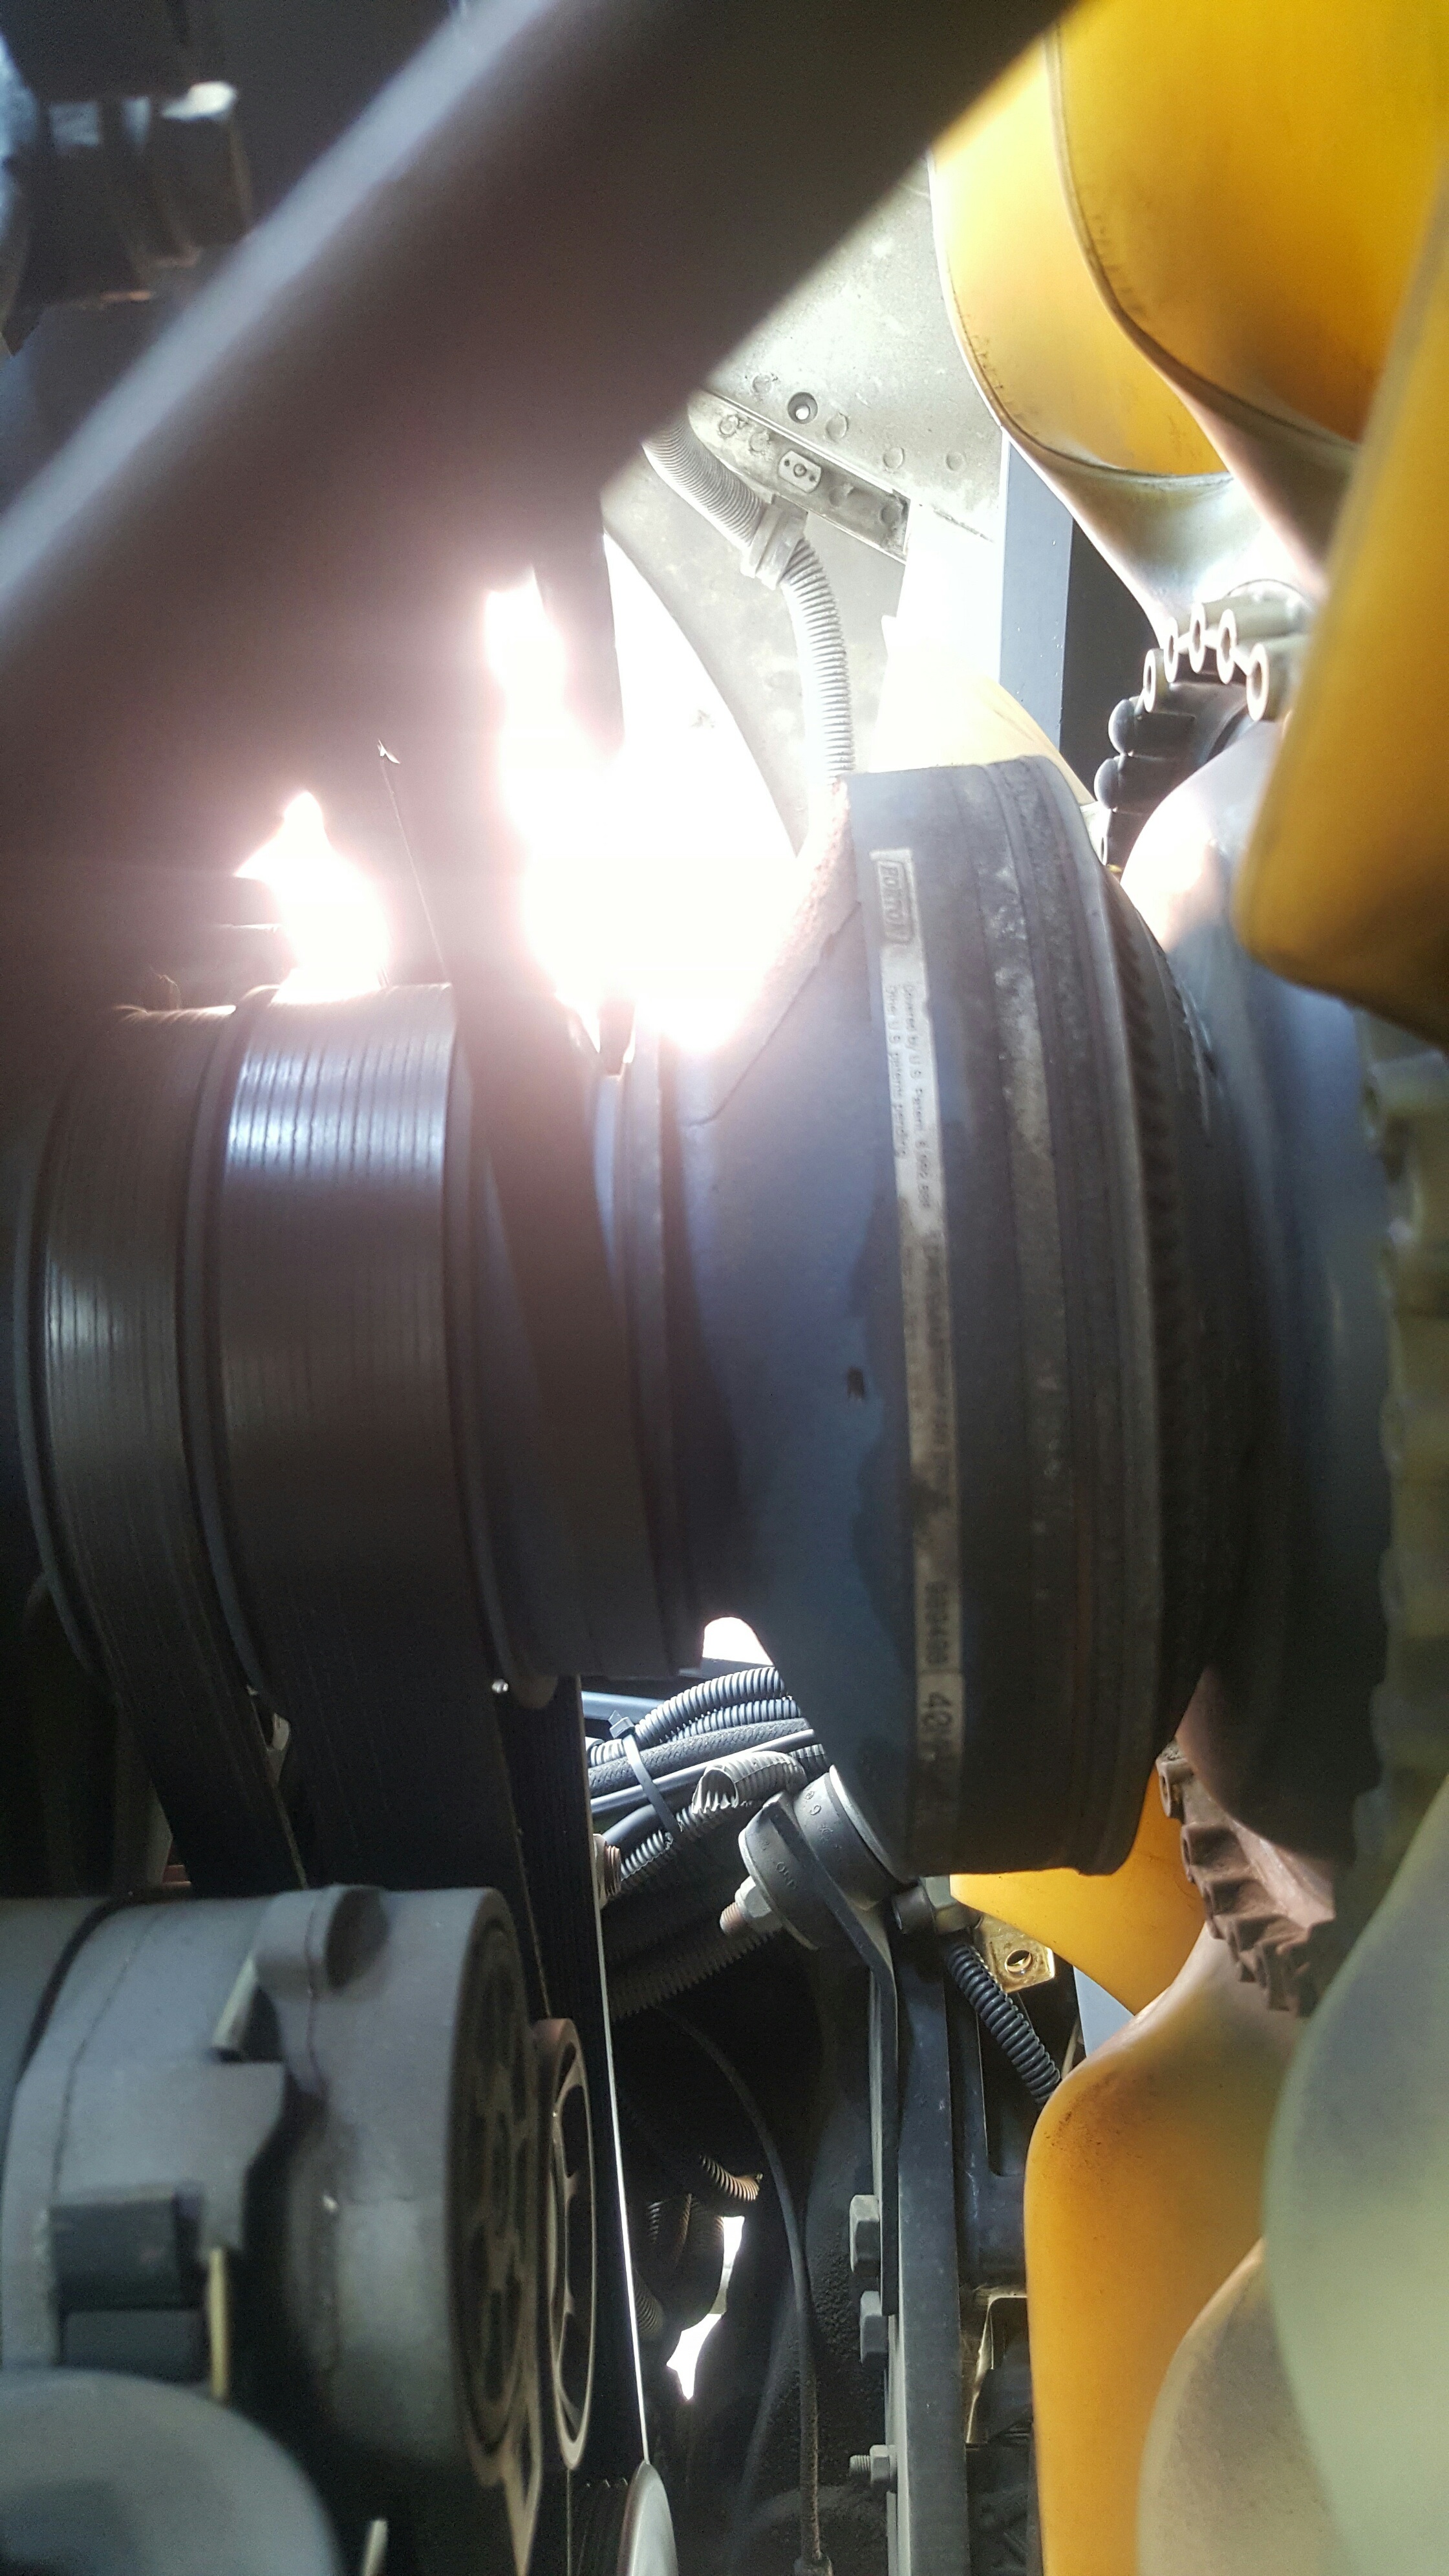 07 Mack Mr688p Trying To Diagnose Air Operated Radiator